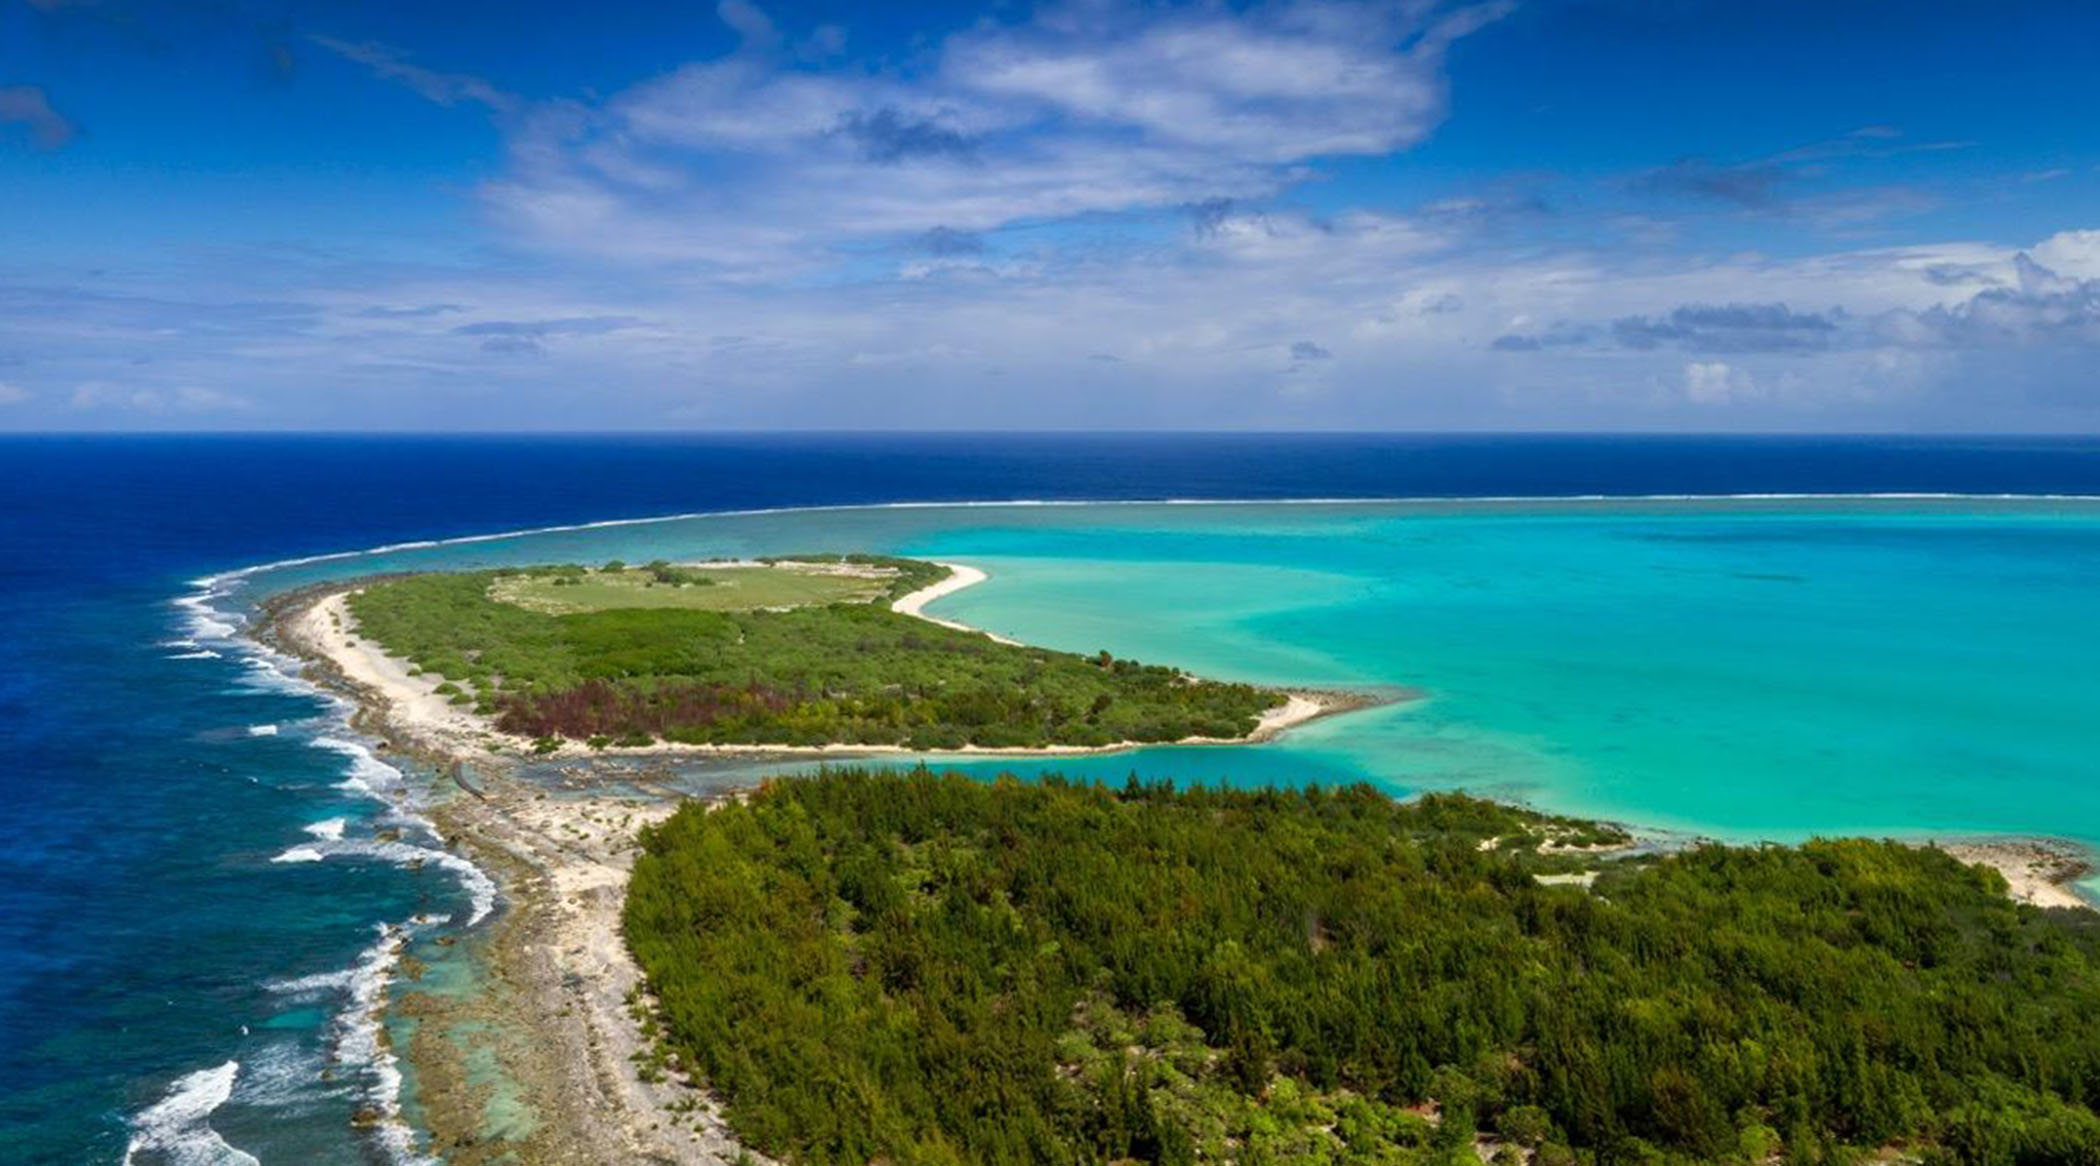 Image of Wake Island